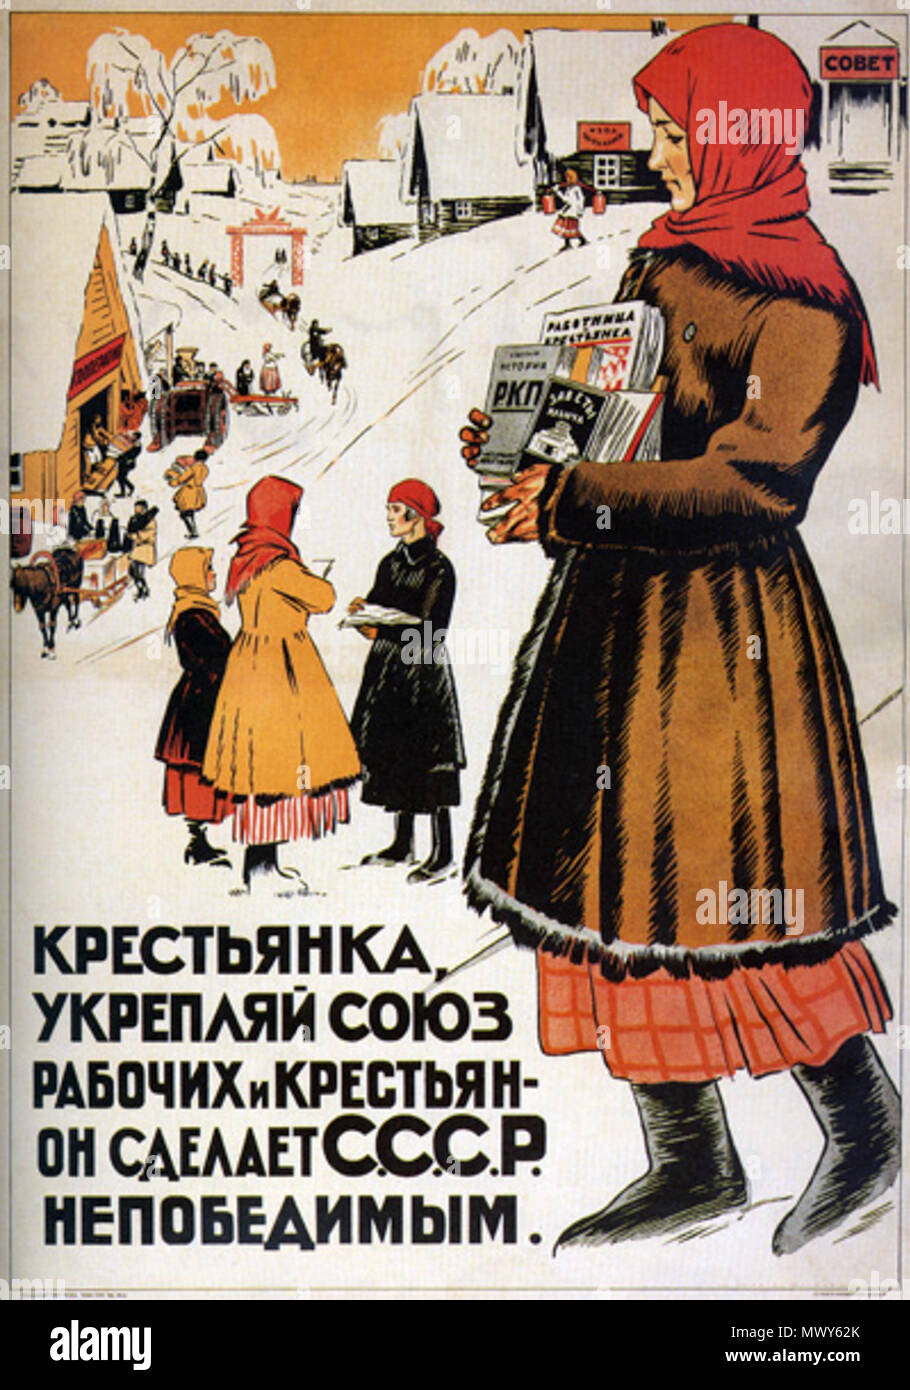 """. English: Soviet propoganda poster 1925 . 1925. Unknown 1 """"Peasant woman, consolidate the unity of workers and peasants."""" - Stock Image"""